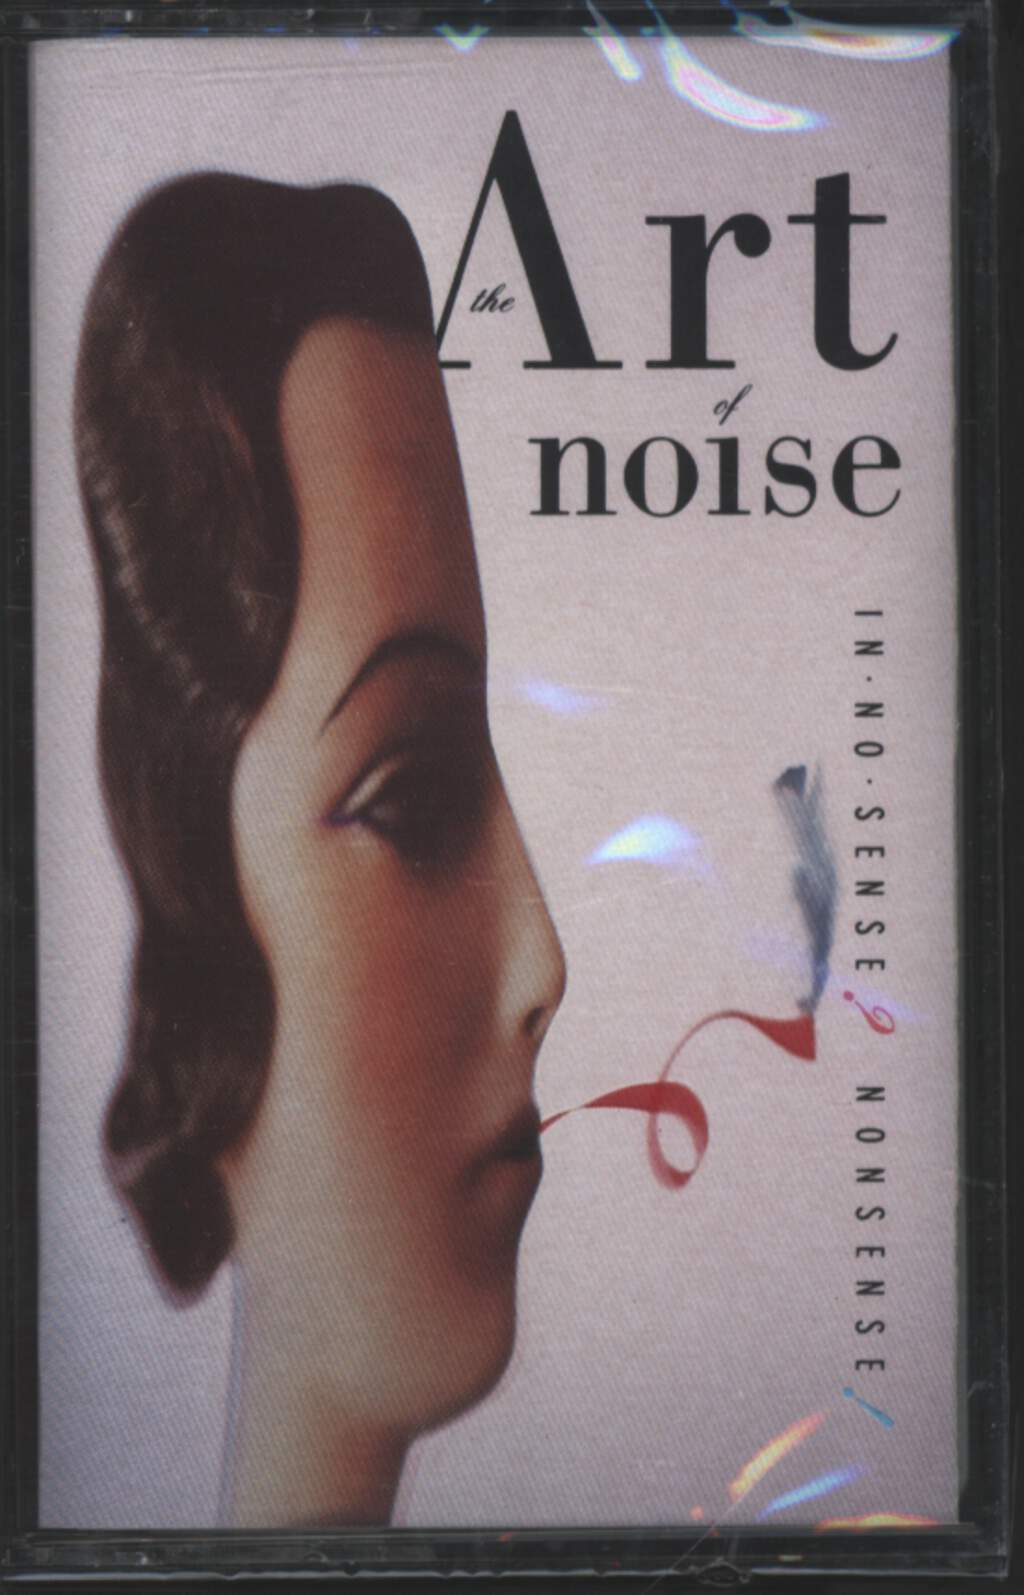 The Art Of Noise: In No Sense? Nonsense!, Tape